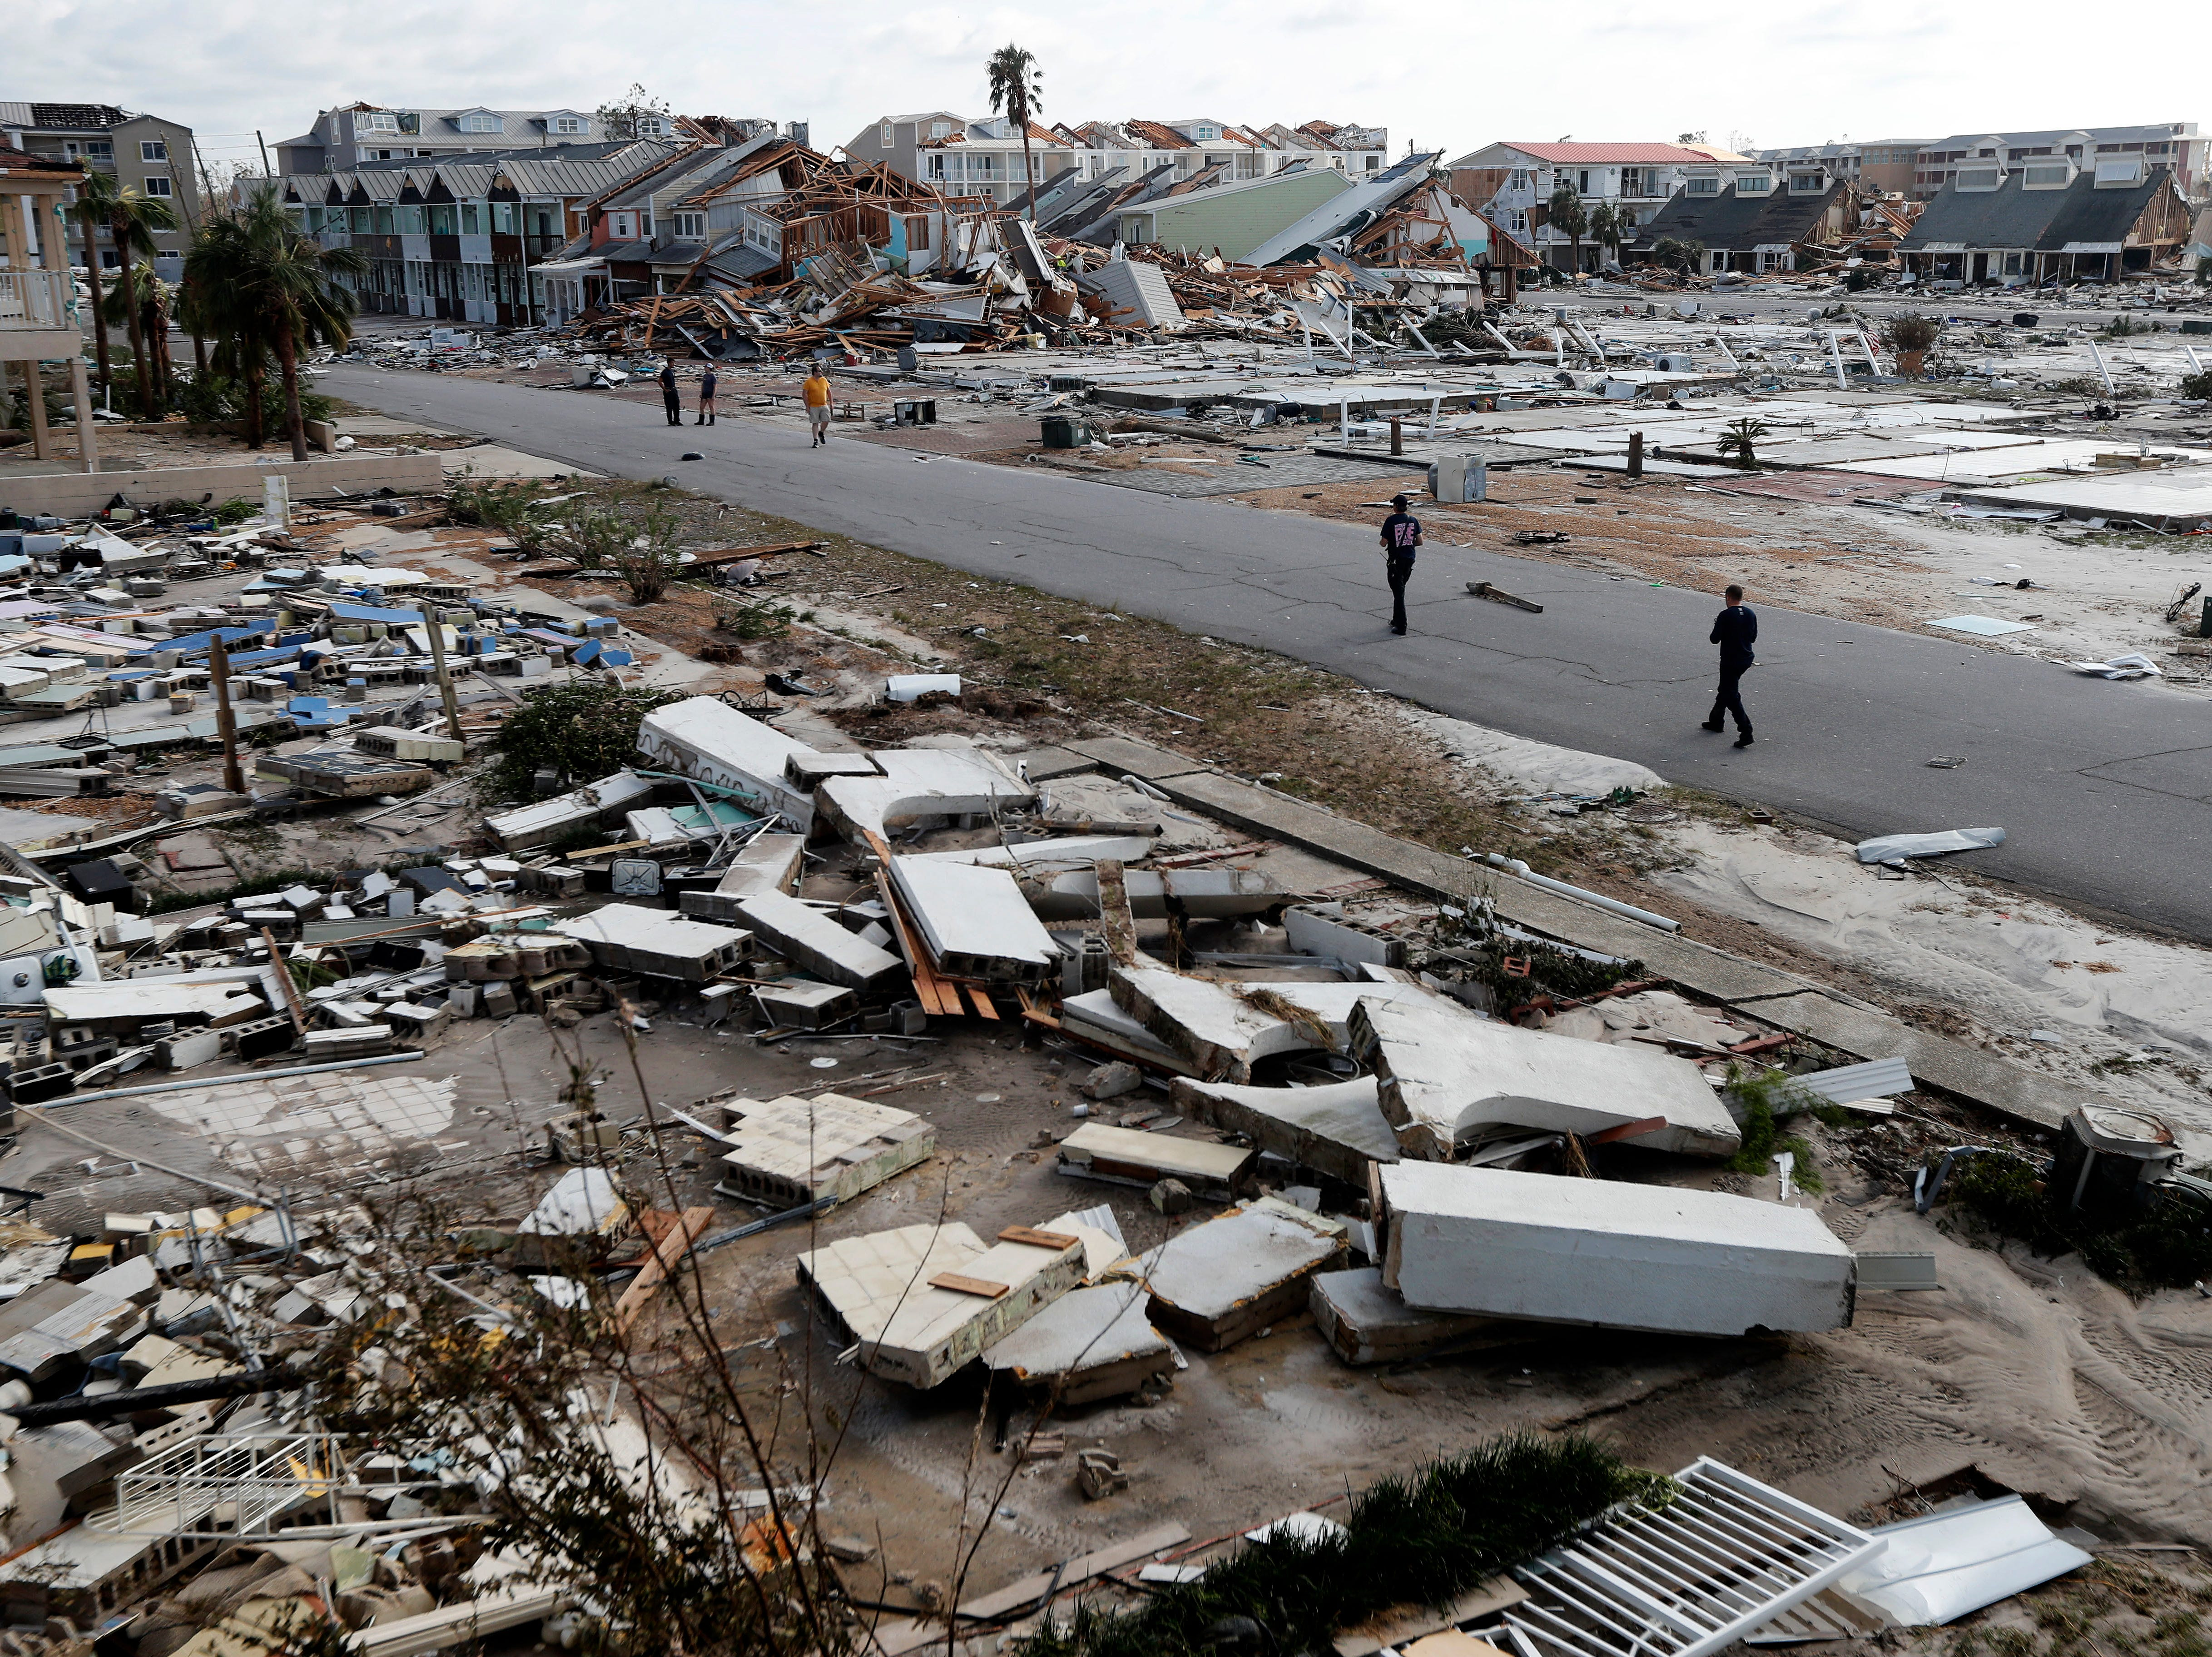 Rescue personnel search amidst debris in the aftermath of Hurricane Michael in Mexico Beach, Fla., Thursday, Oct. 11, 2018. (AP Photo/Gerald Herbert)